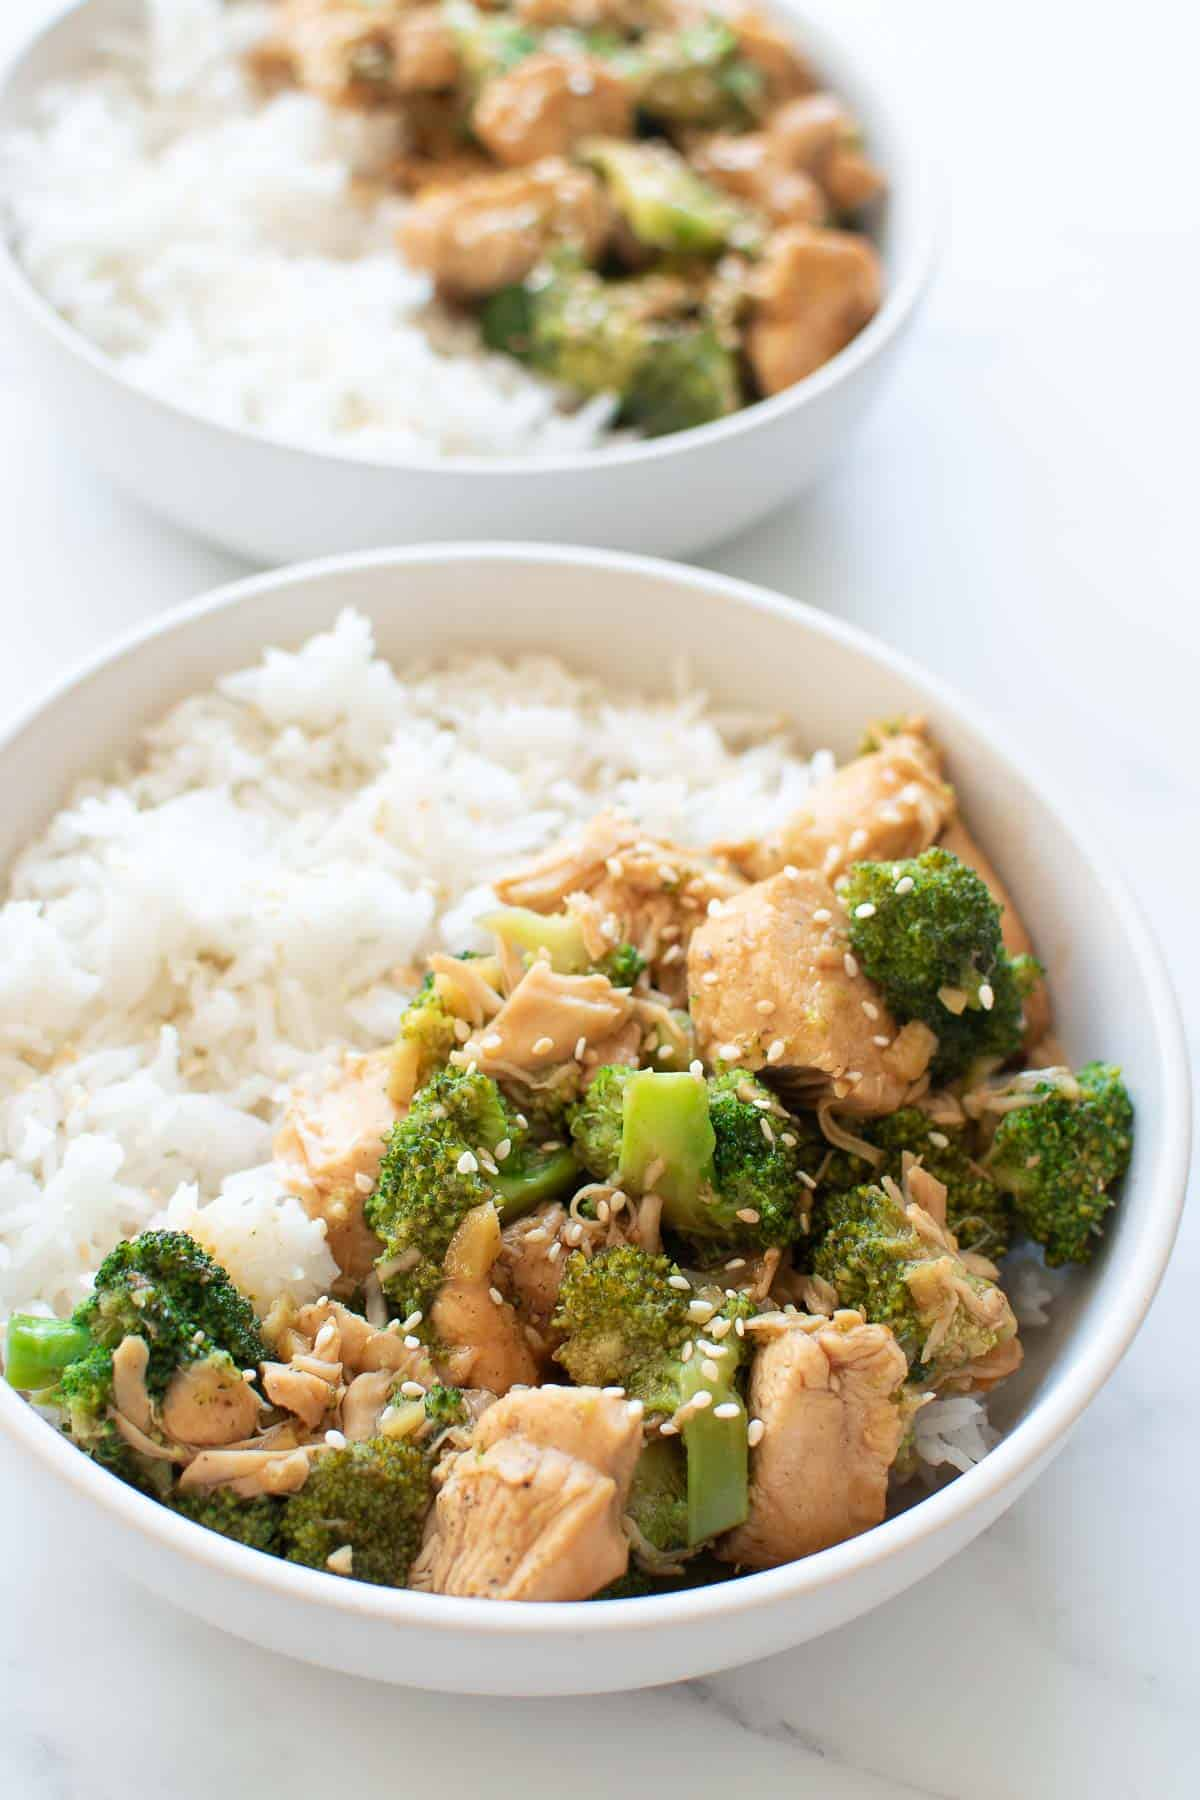 Bowls of pressure cooked broccoli and chicken with rice.